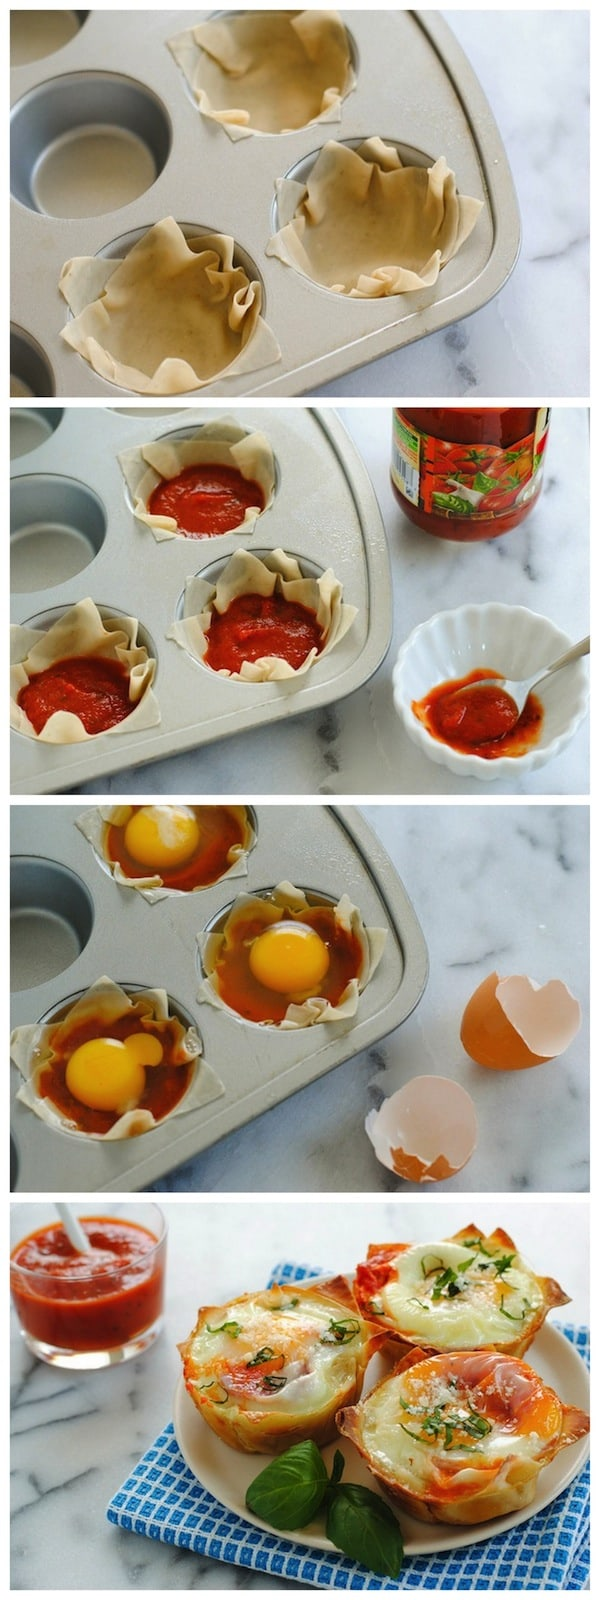 Italian Egg Wonton Cups - A cute, delicious way to serve eggs to a crowd at brunch! Crispy wonton cups filled with marinara sauce and eggs, topped with Parmesan cheese and basil. | foxeslovelemons.com